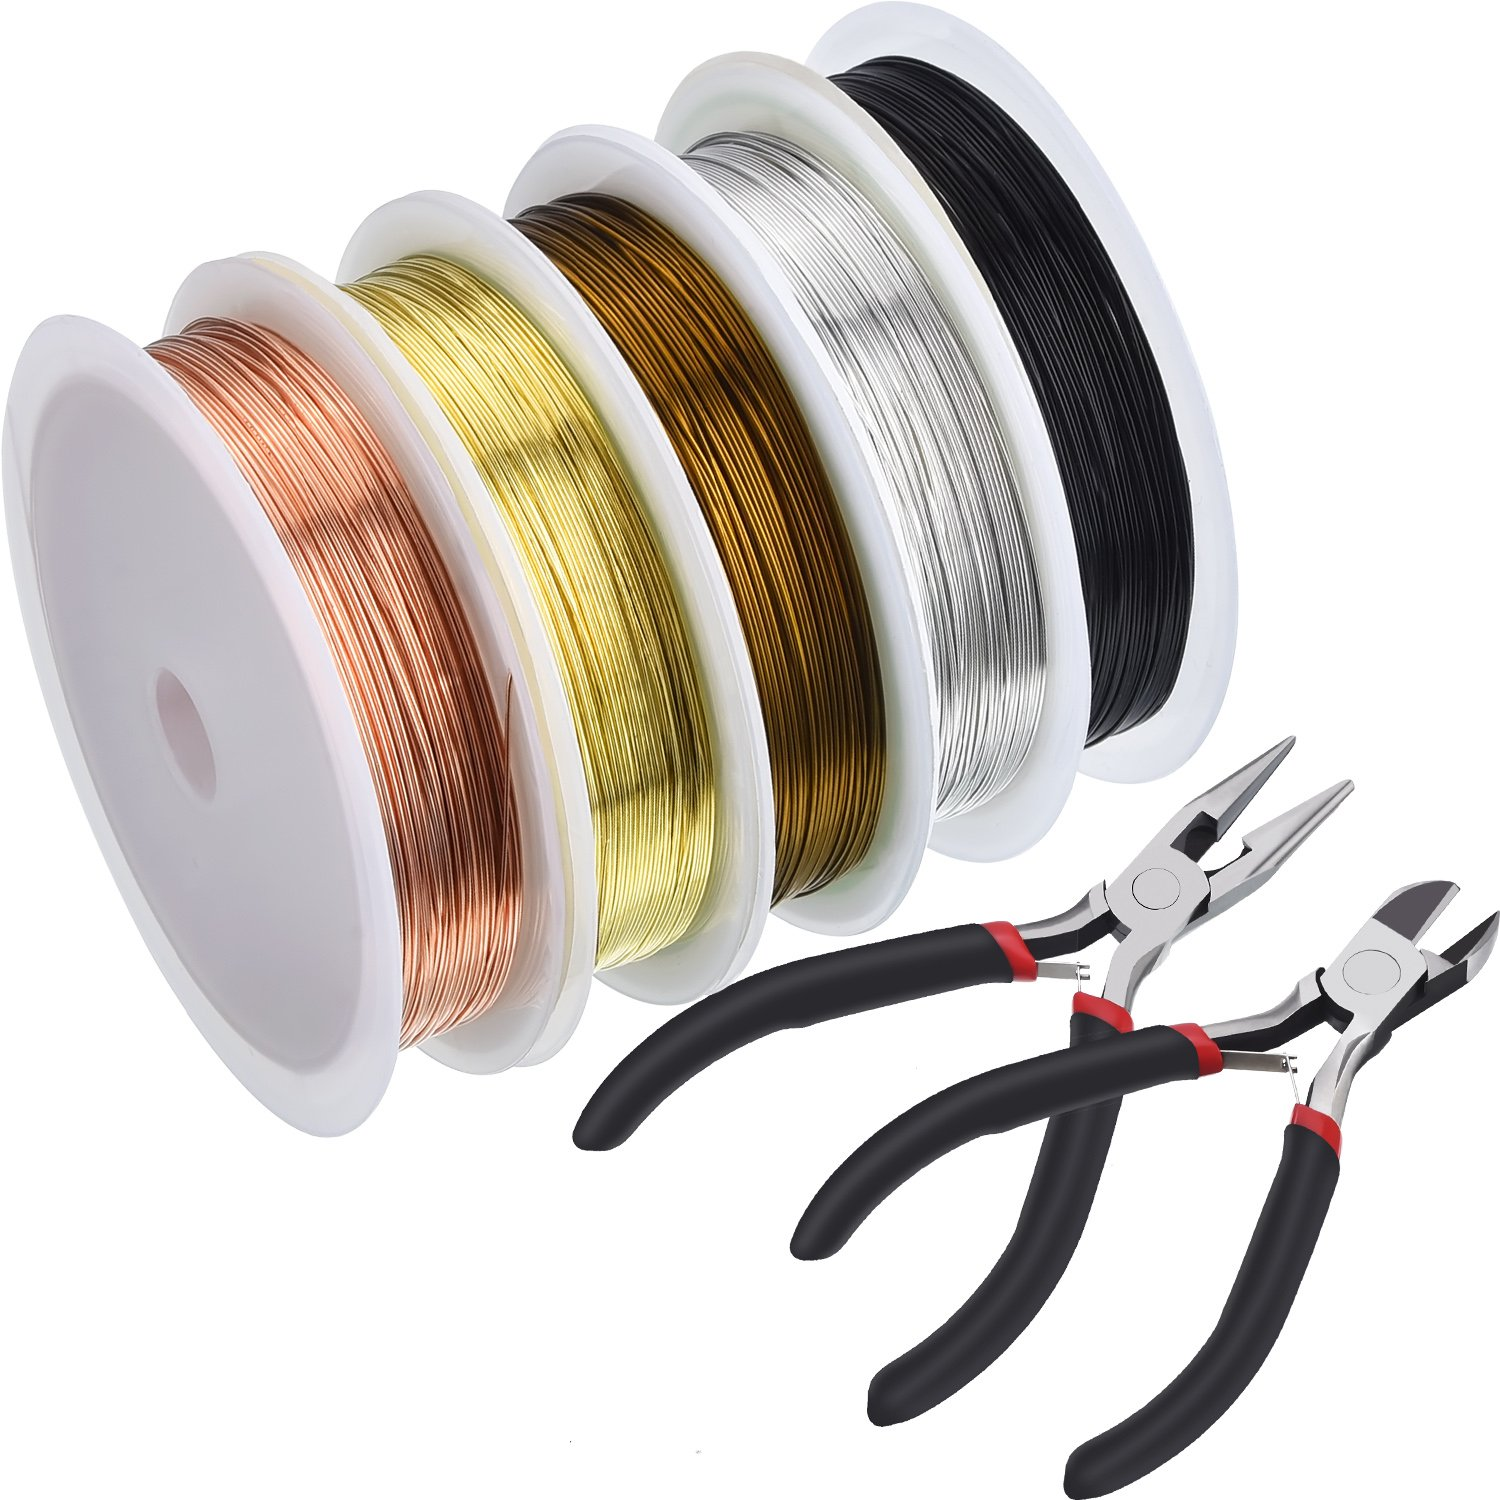 5 Rolls Jewelry Beading Wire Soft Copper Wire with Cutting Pliers Nose Pliers Repair Tools Kit Jewelry Pliers for Crafts Beading Jewelry Making TecUnite 4336834155